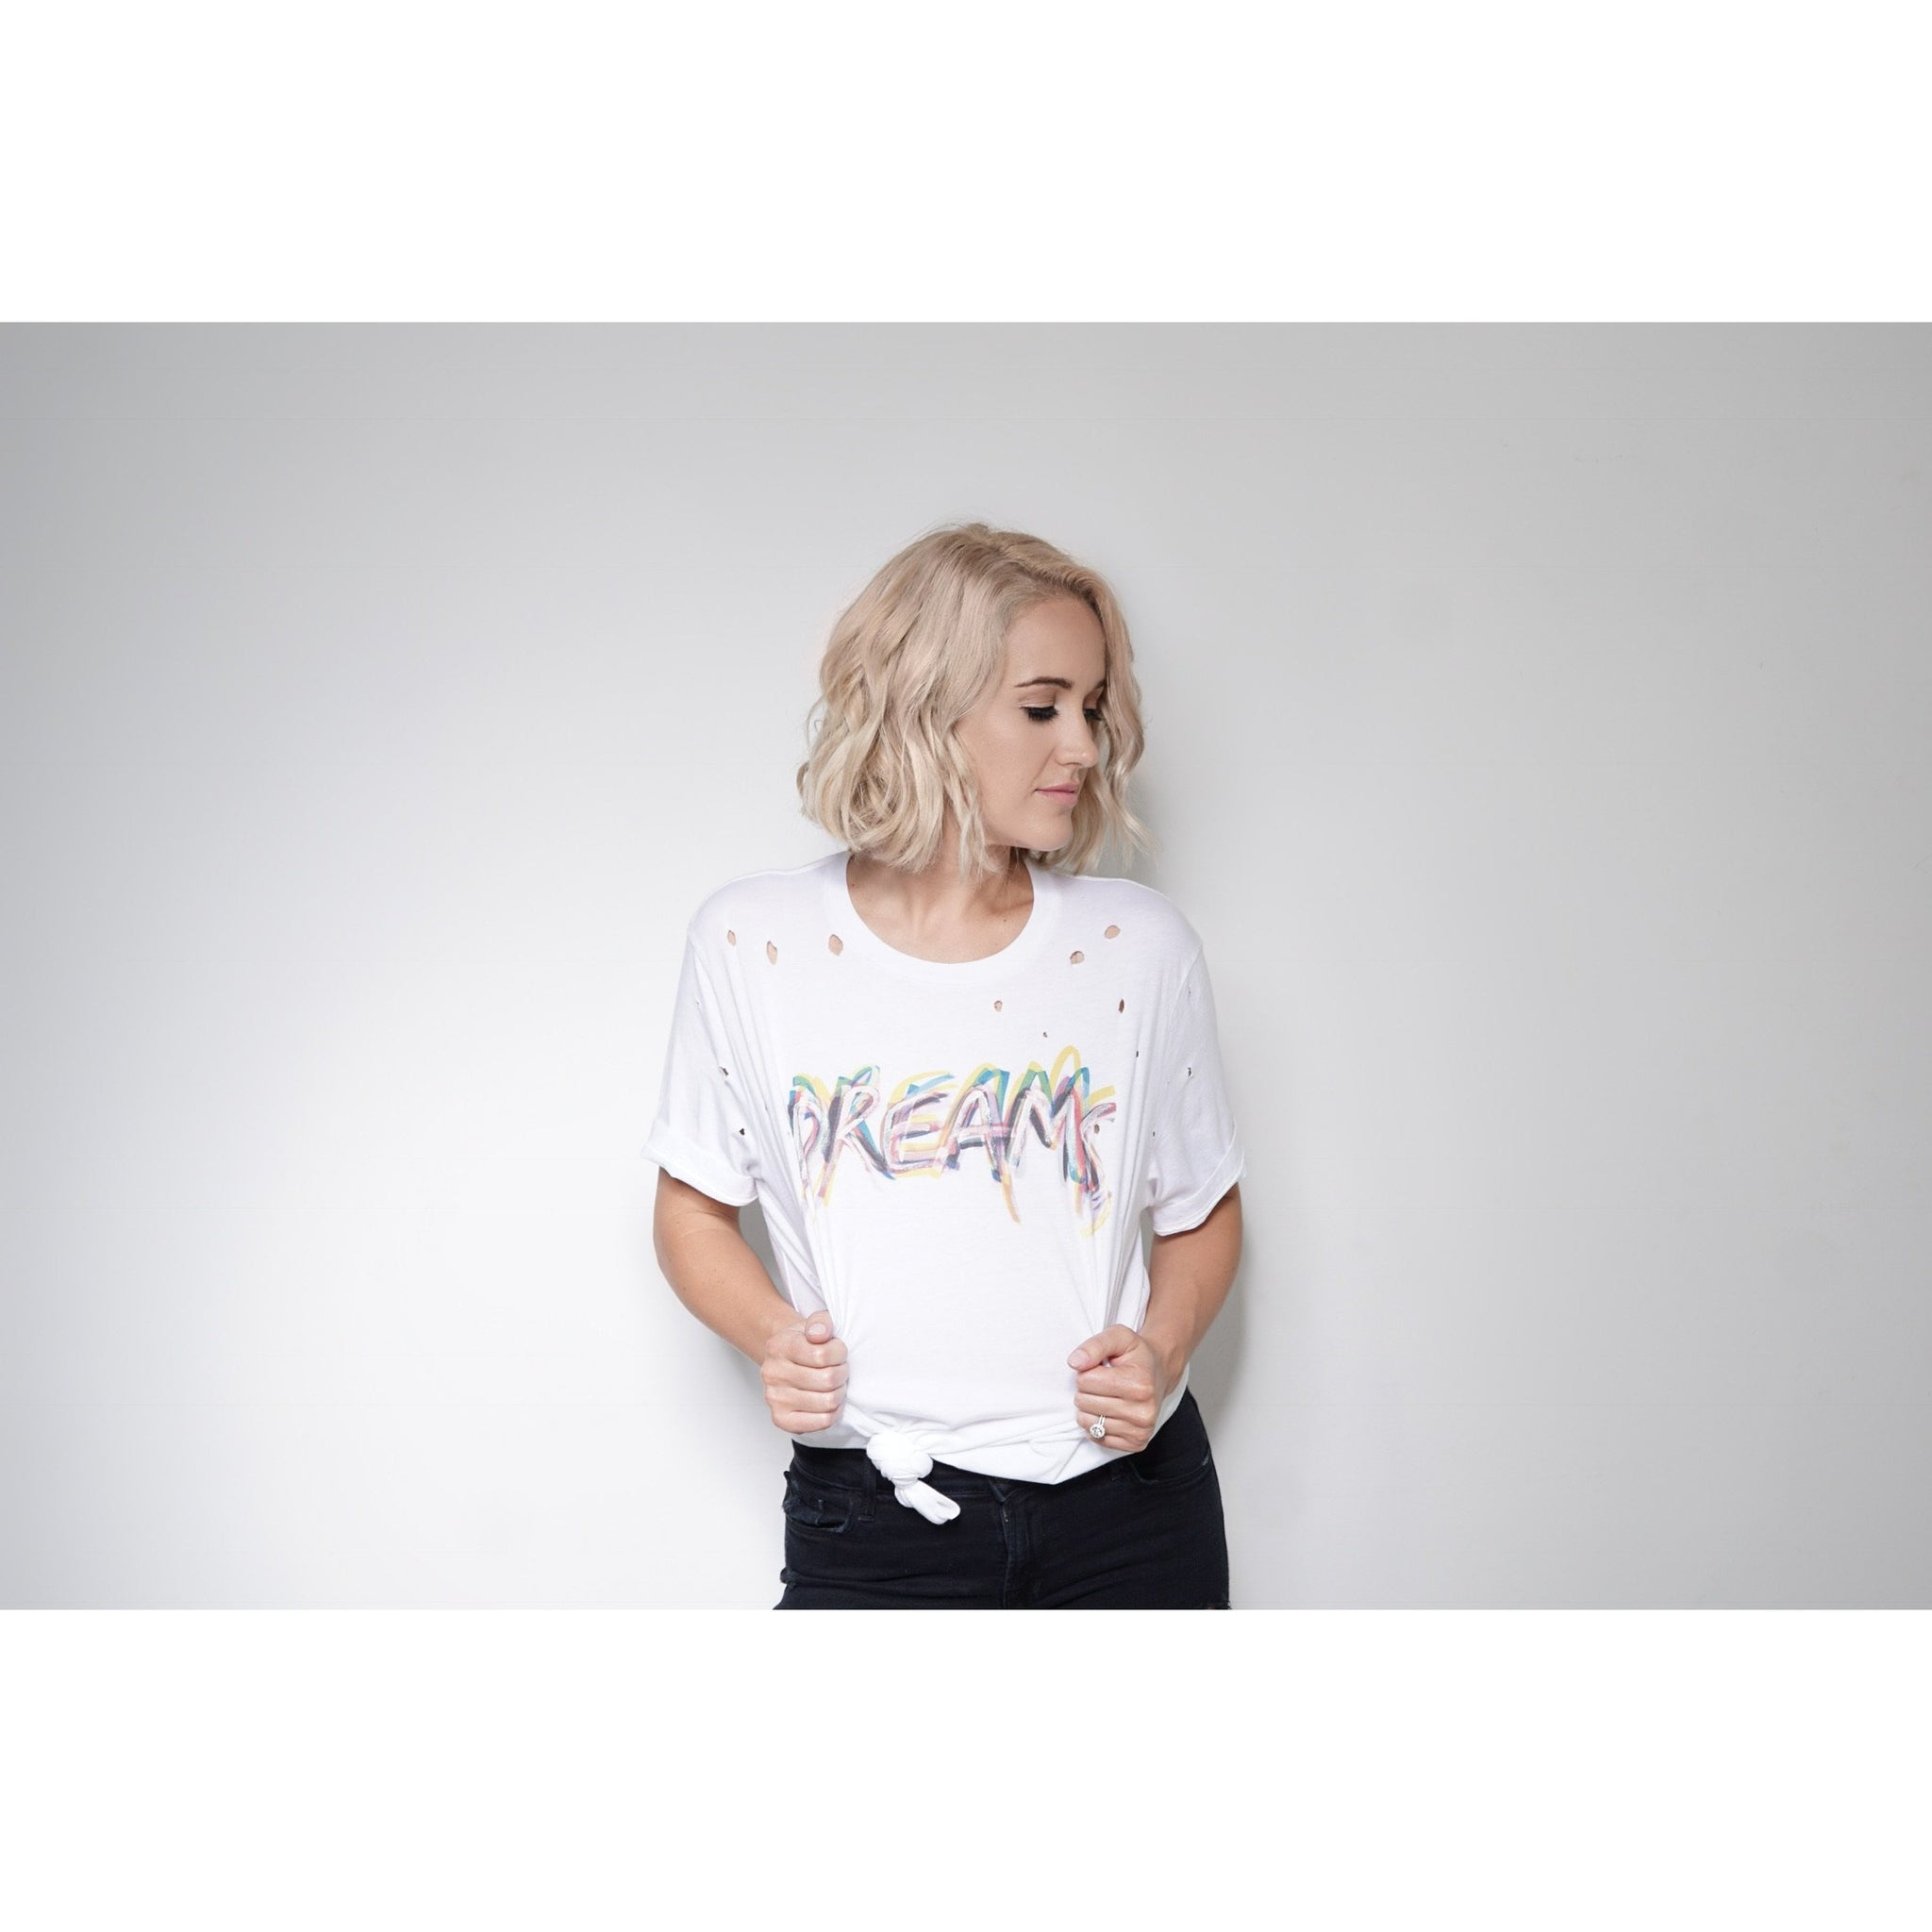 WOA | Dreams Tee